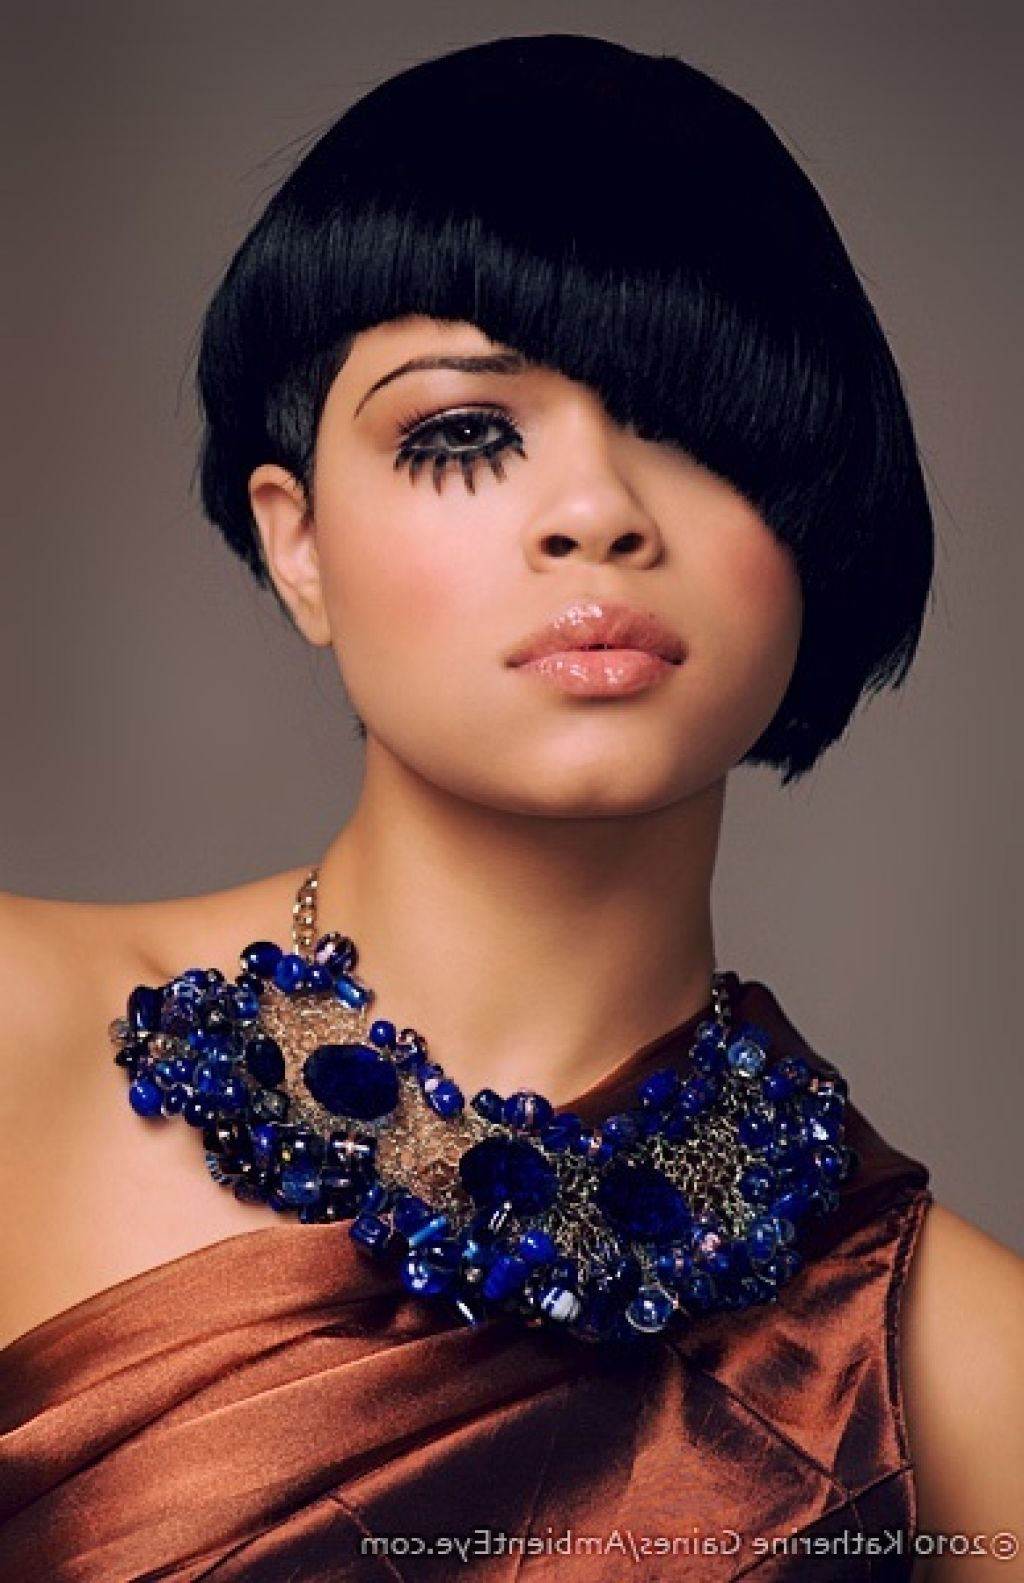 Marvelous 5 Tremendous Short Haircuts For Thick Hair African American Cruckers Short Hairstyles For Black Women Fulllsitofus